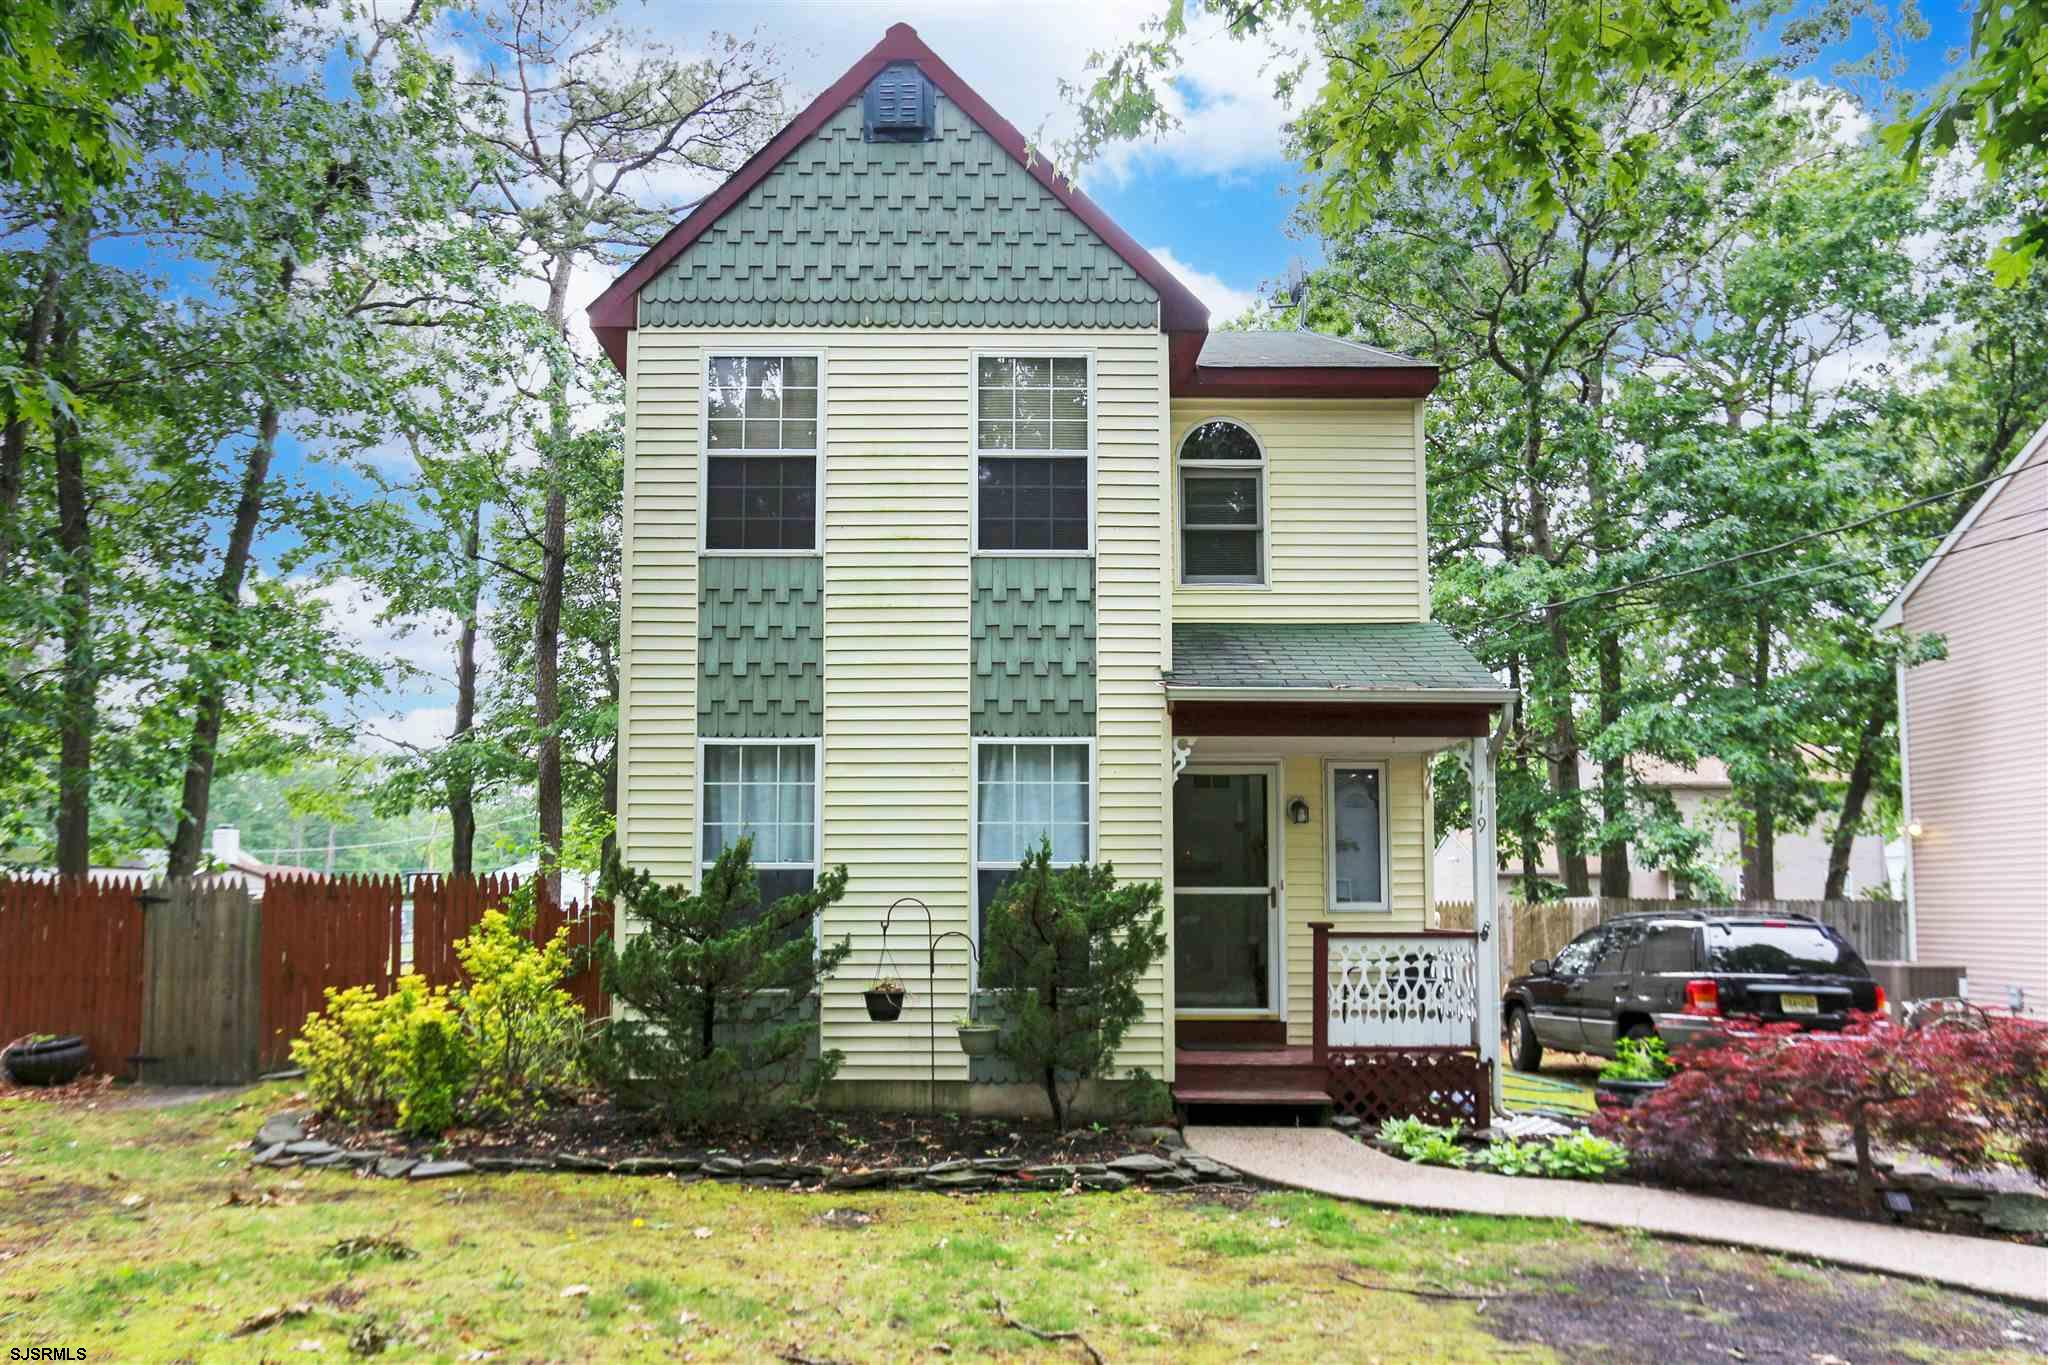 This beautiful 2 story single family home features 3 spacious bedrooms, 1.5 baths, formal living and